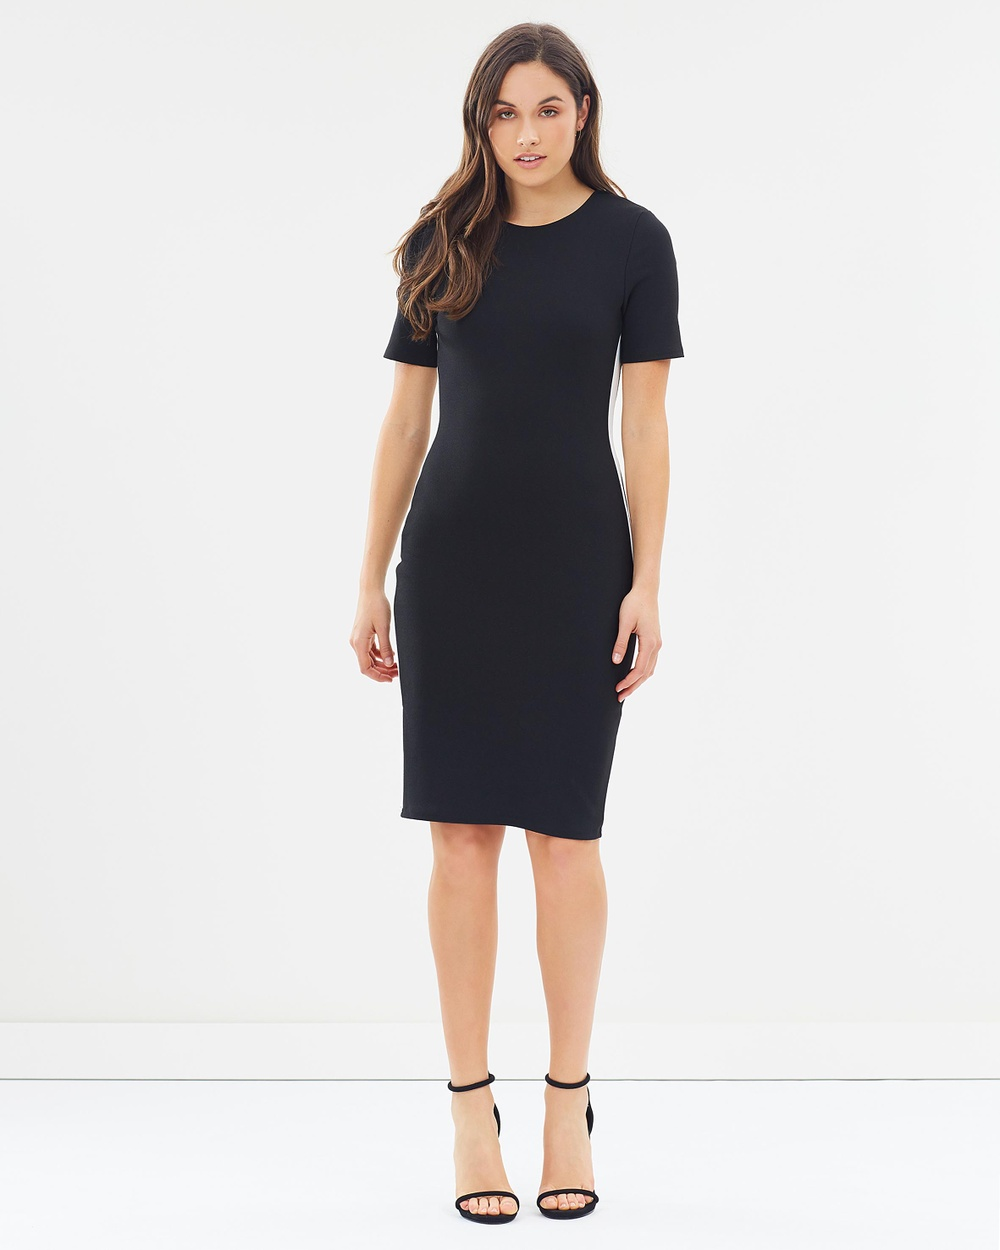 Dorothy Perkins Stripe Body Con Dress Bodycon Dresses Black Stripe Body-Con Dress